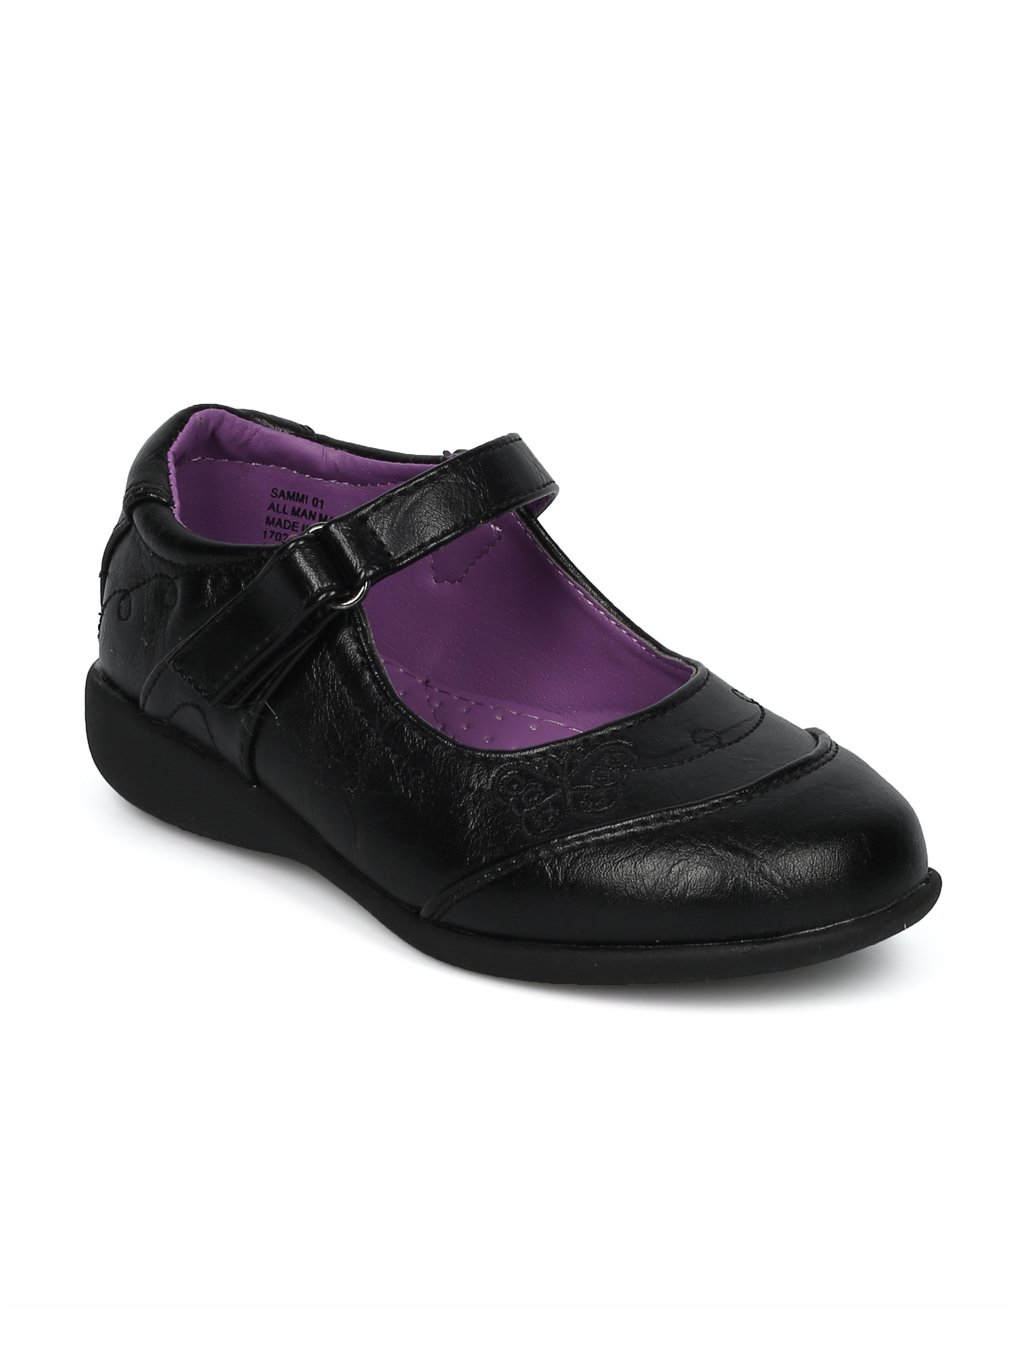 Alrisco Schola Sammi-01 Leatherette Butterfly Mary Jane Strap School Uniform Shoes HC58 - Black Leatherette (Size: Little Kid 13)